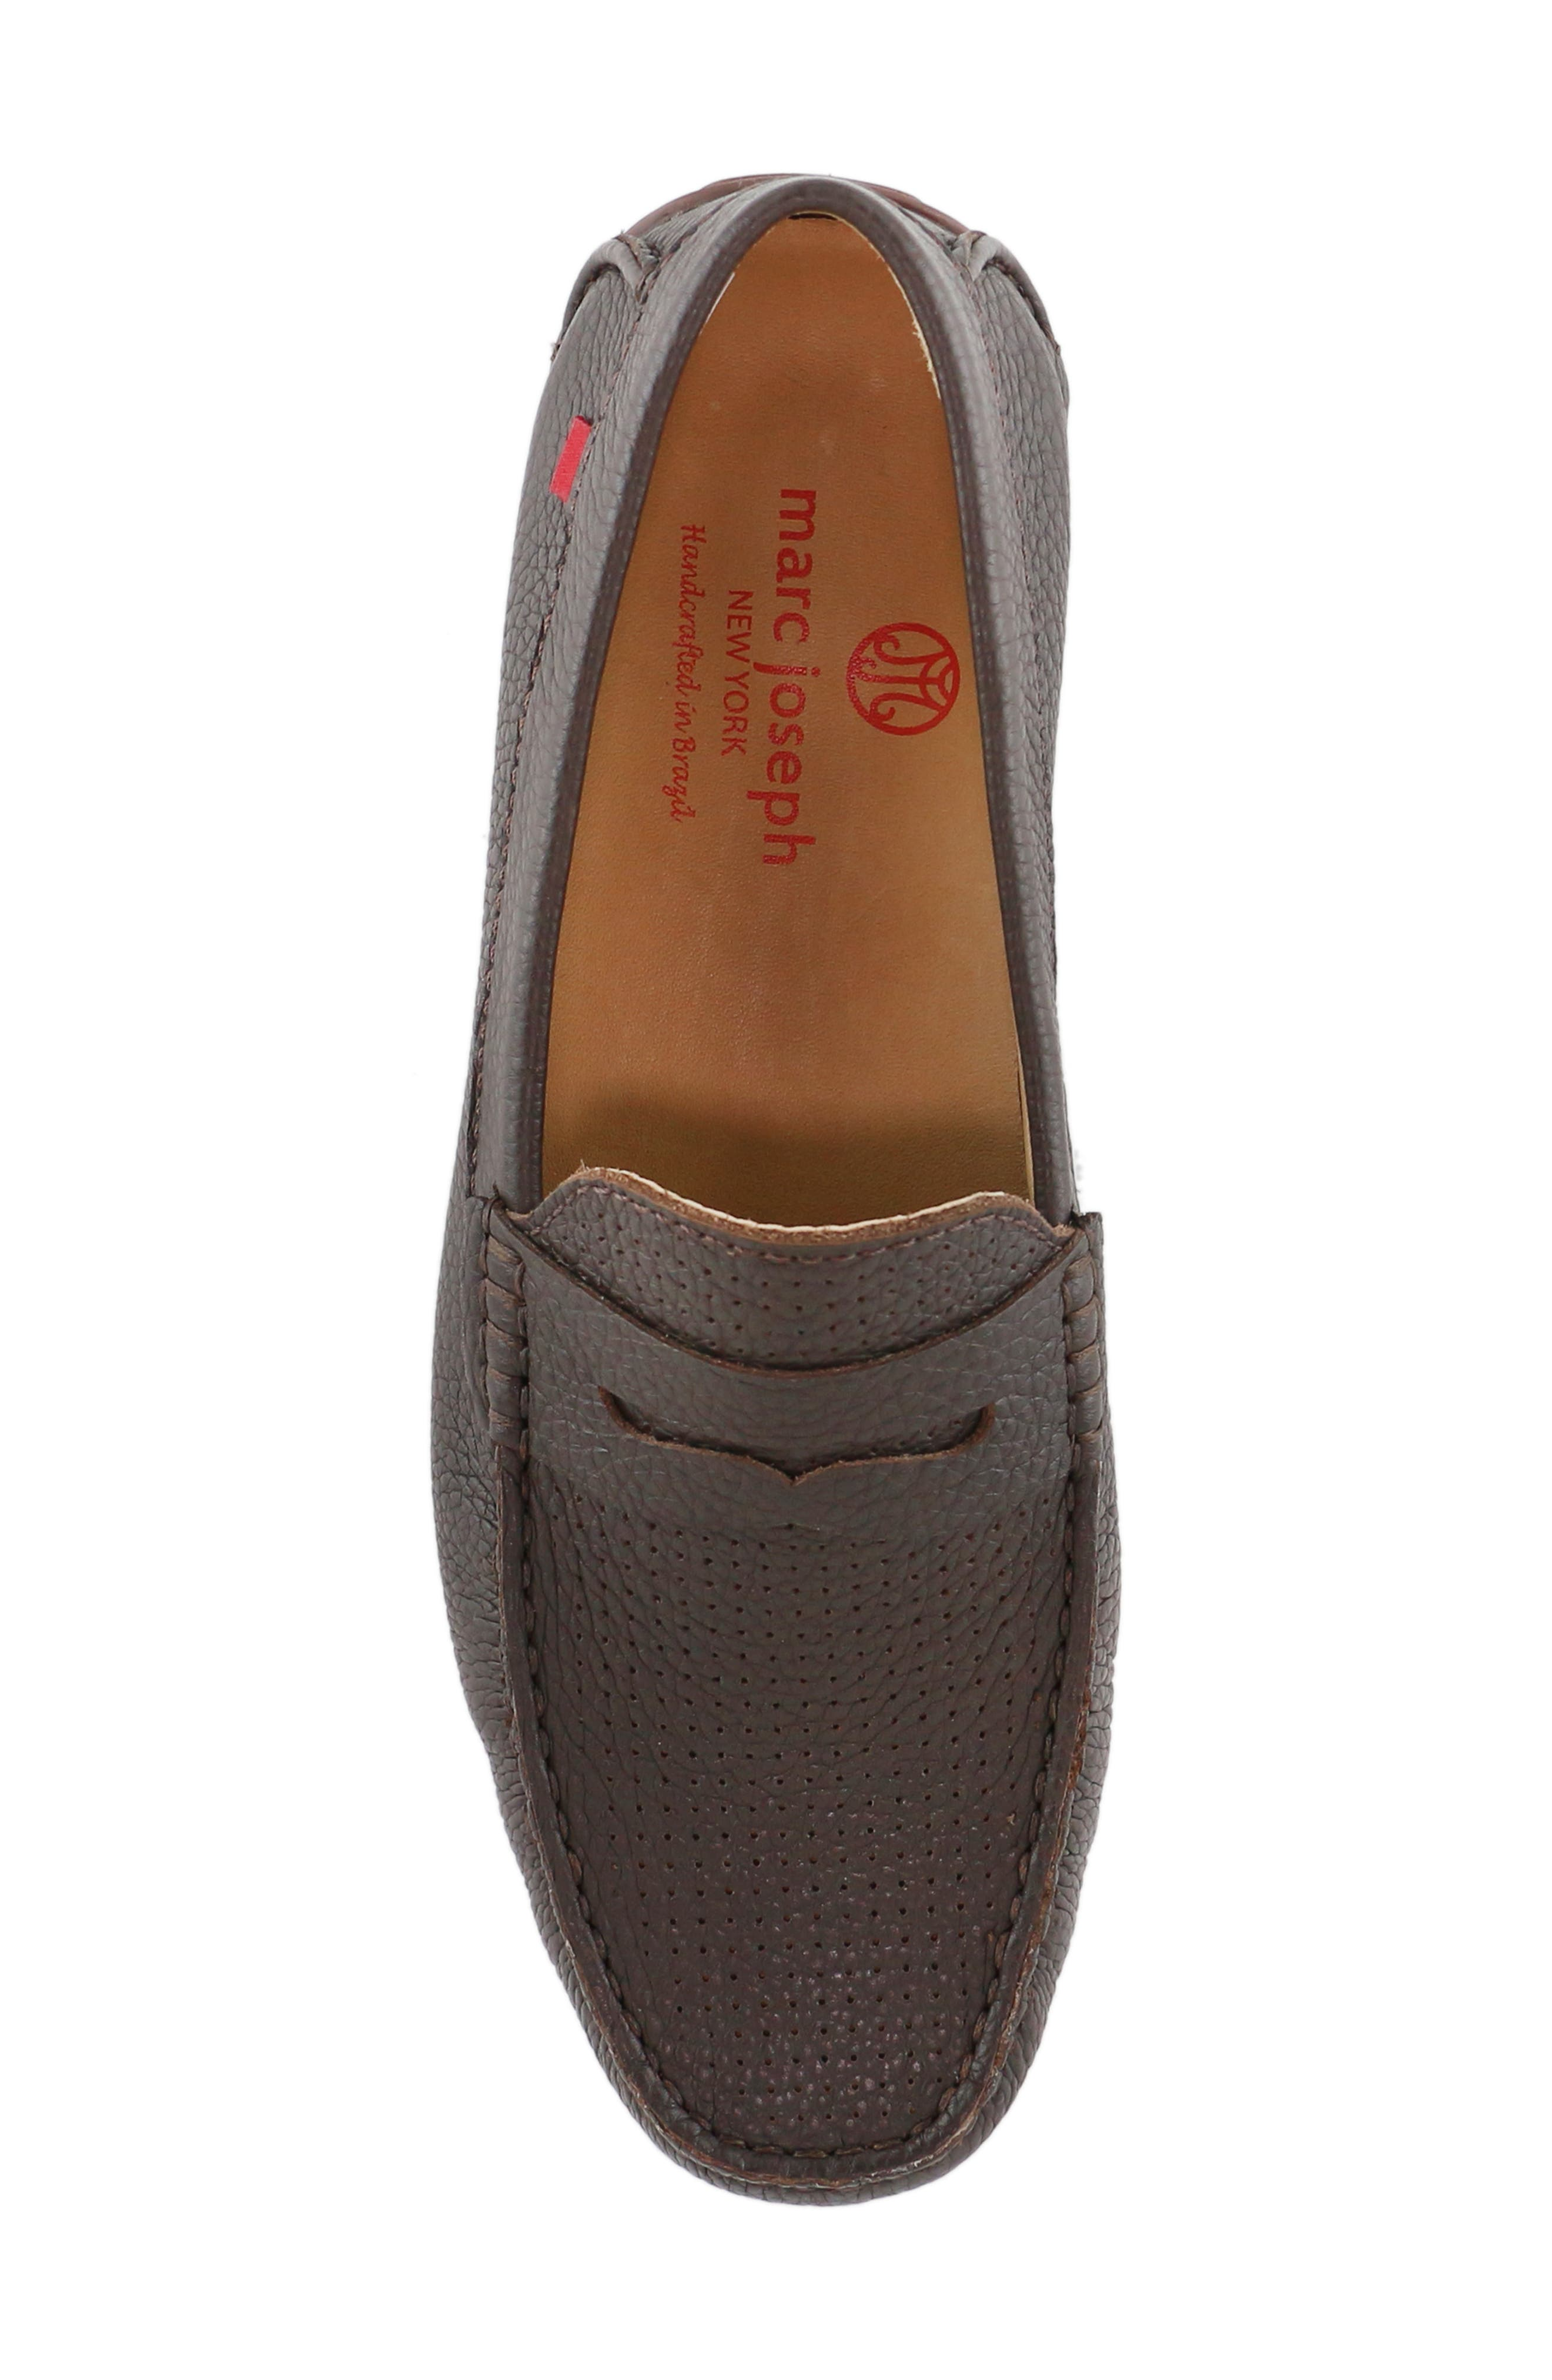 MARC JOSEPH NEW YORK, 'Union Street' Penny Loafer, Alternate thumbnail 5, color, BROWN GRAINY LEATHER